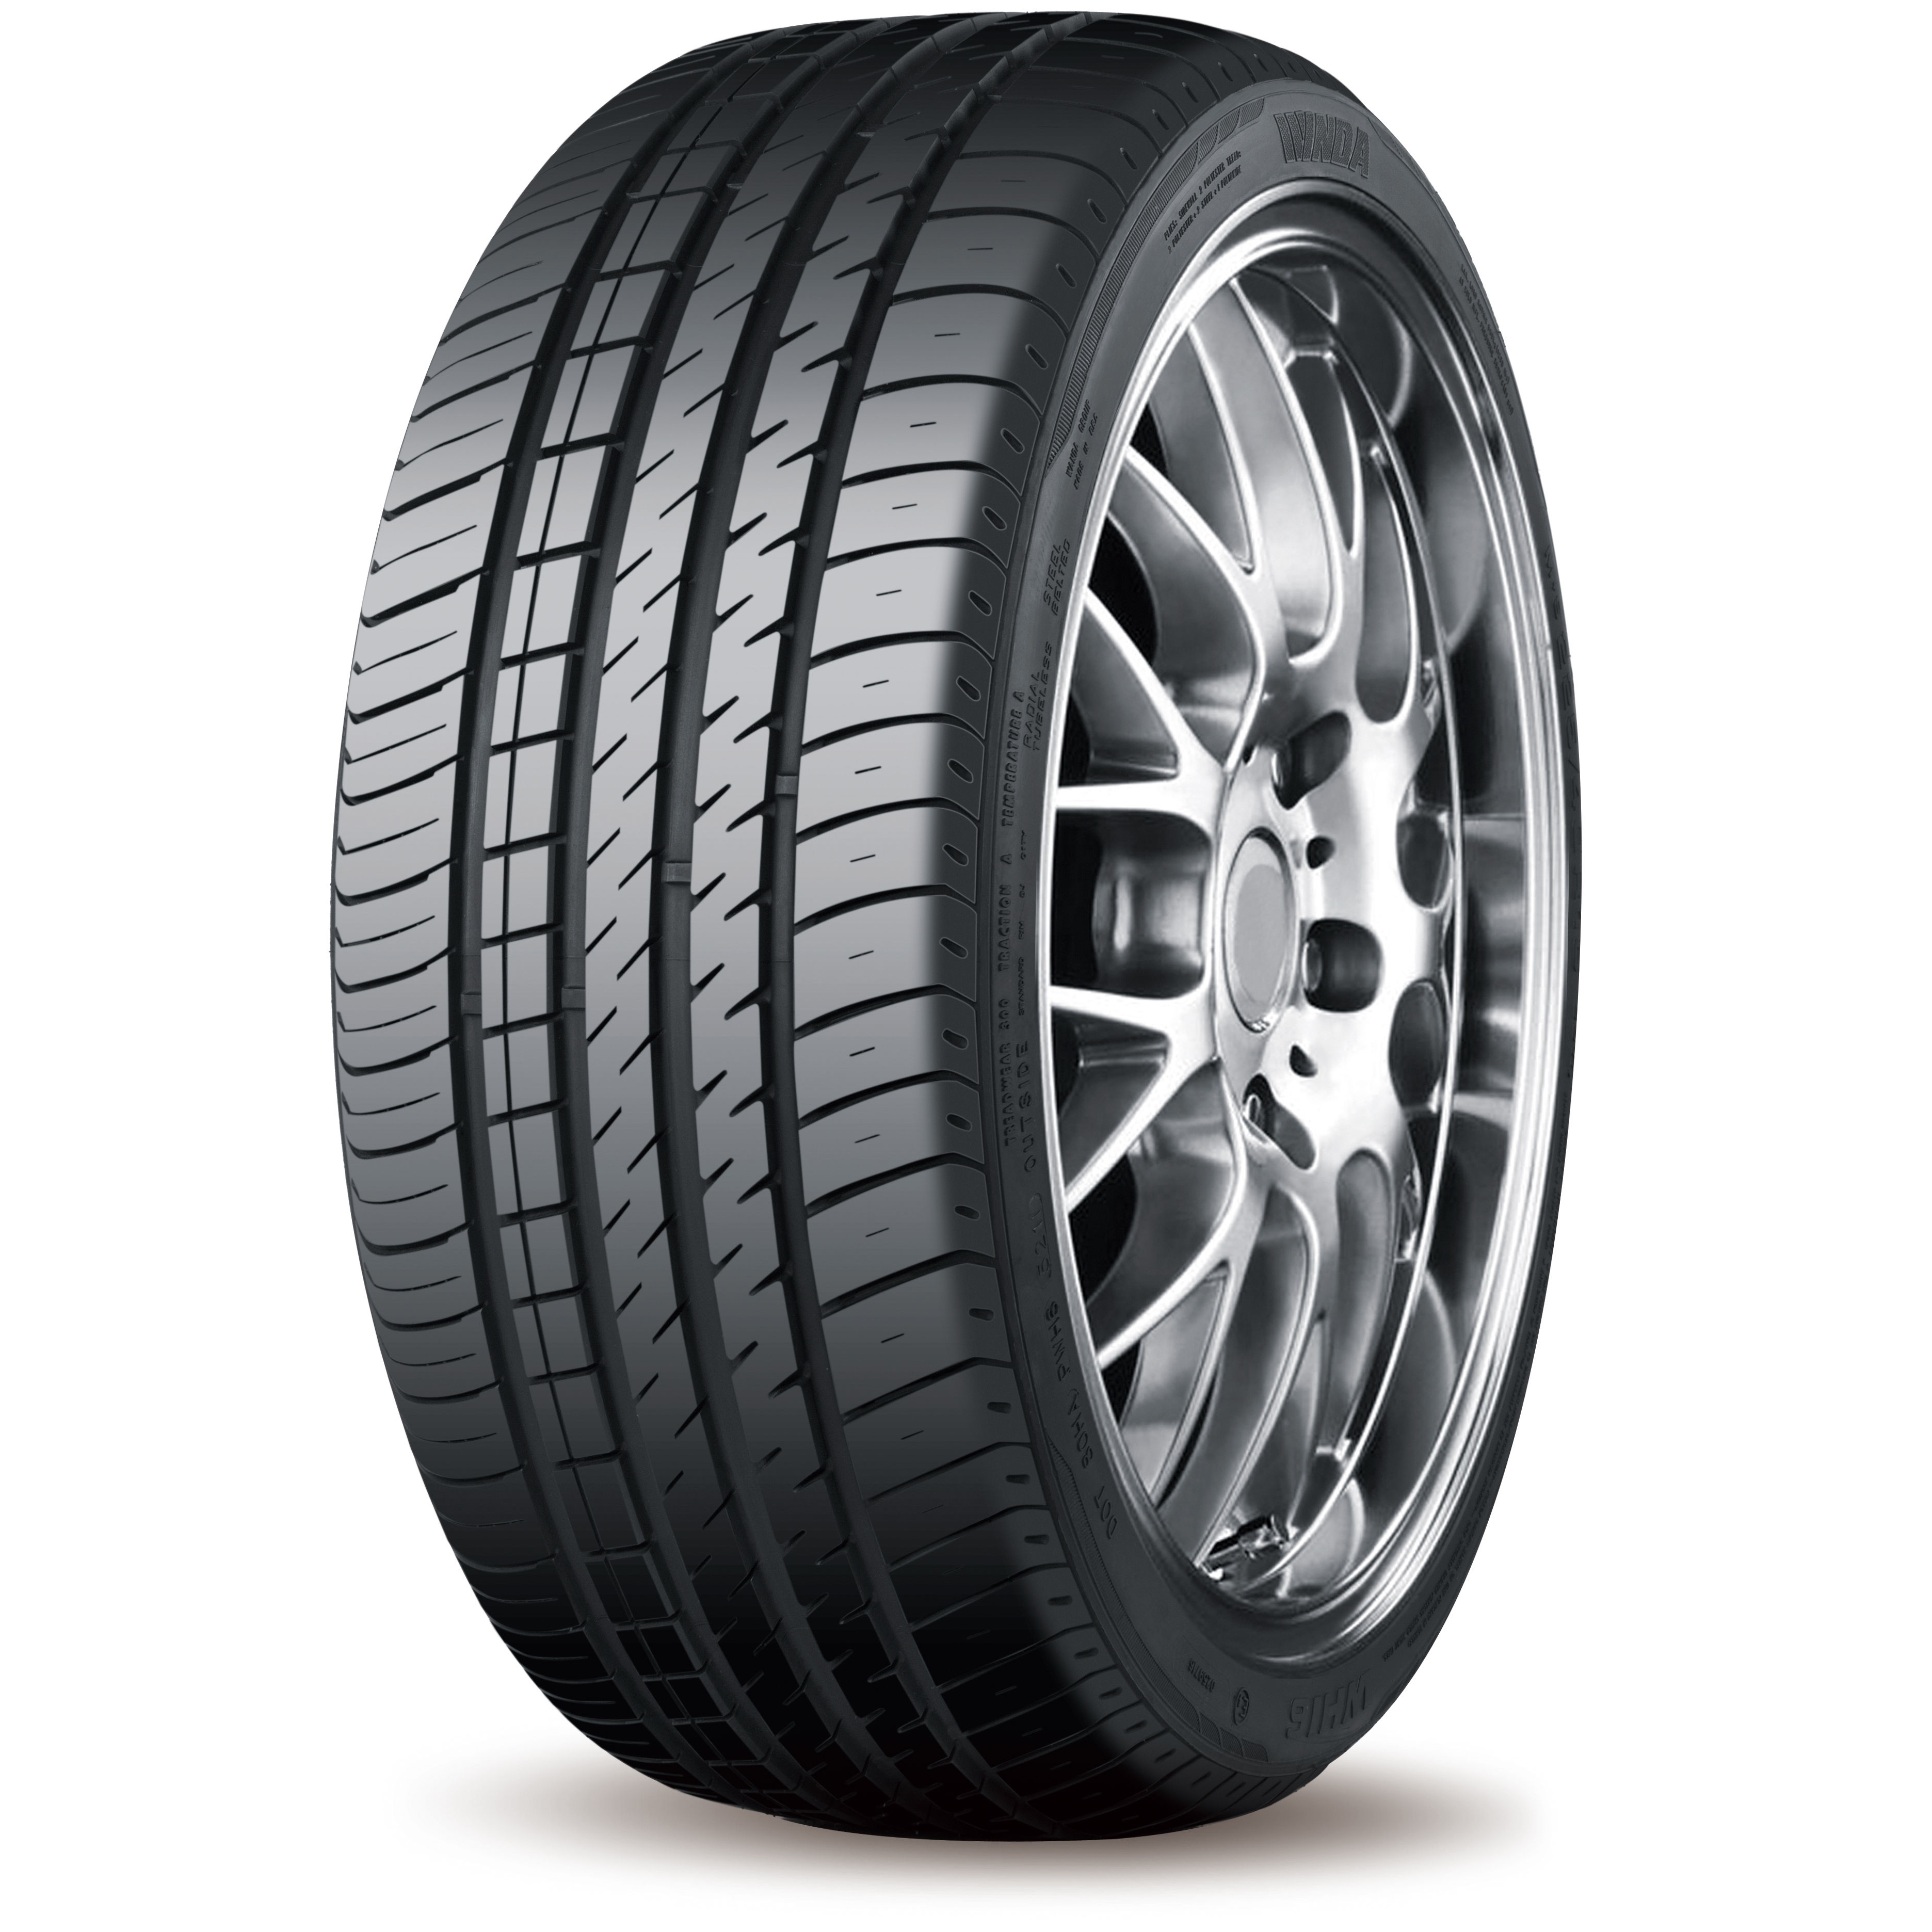 High Quality Passenger Car Tyres 225/40R18 205/45R16 205/45R17